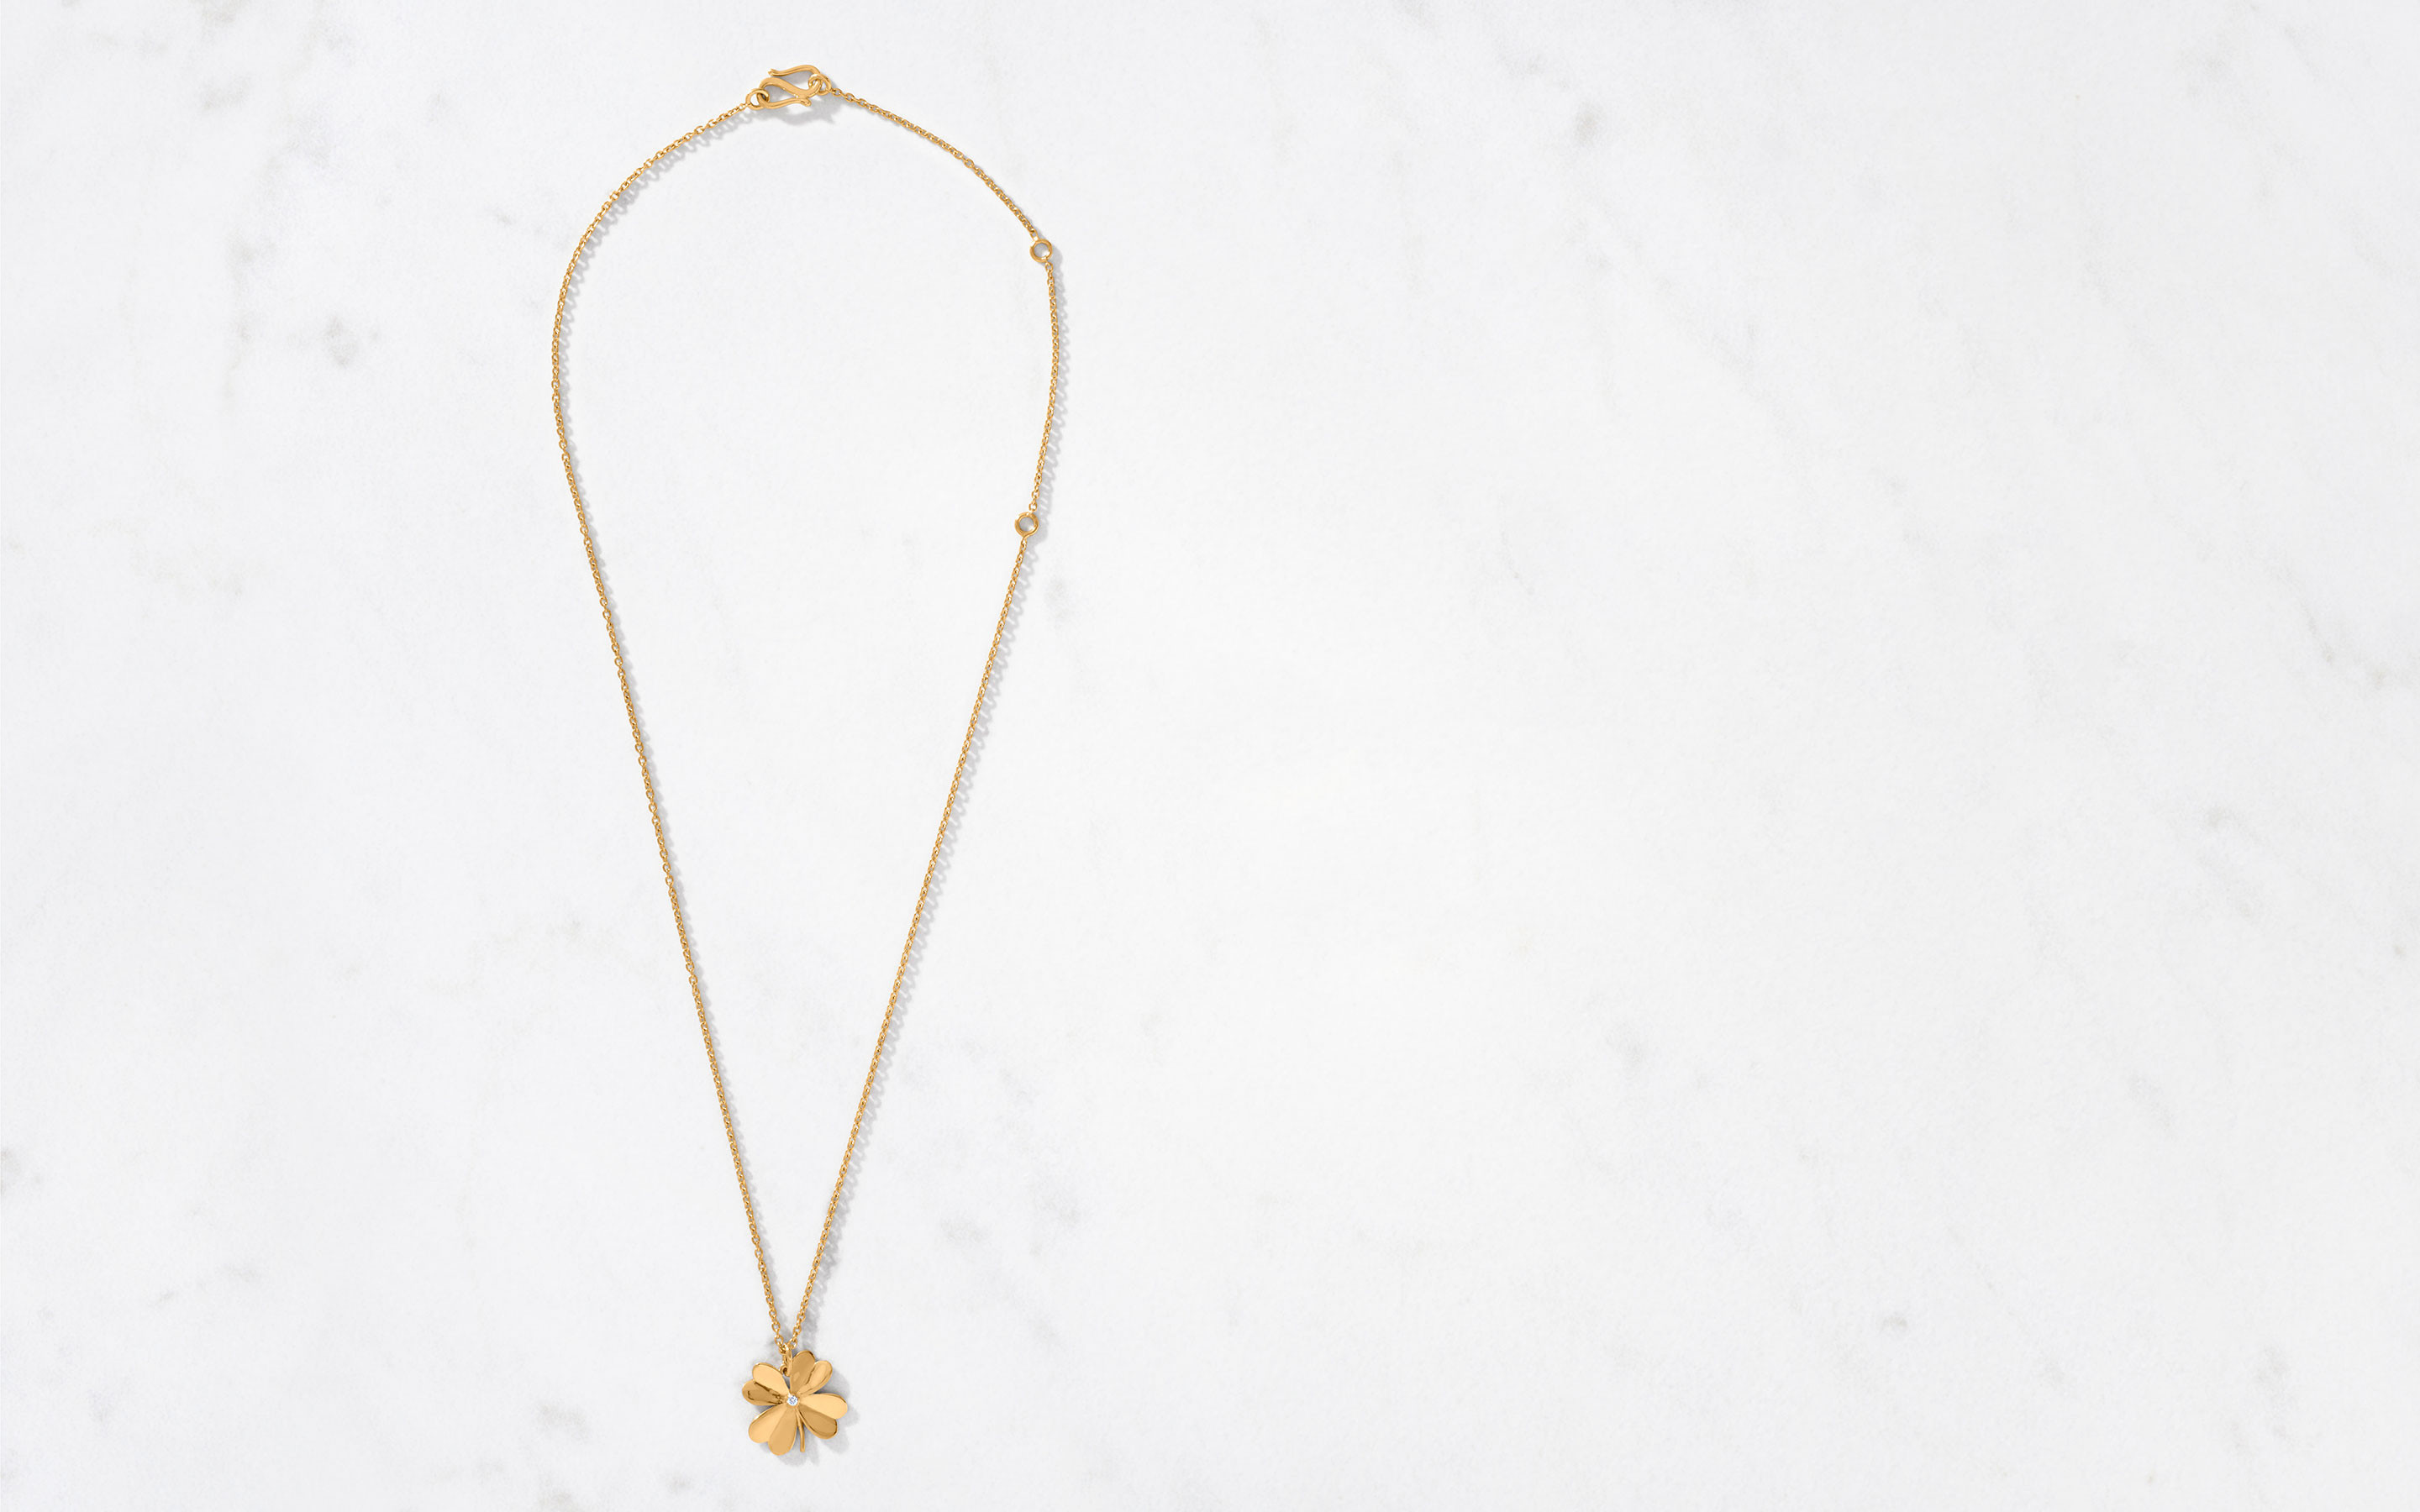 4 Leaf Clover Necklace Polished